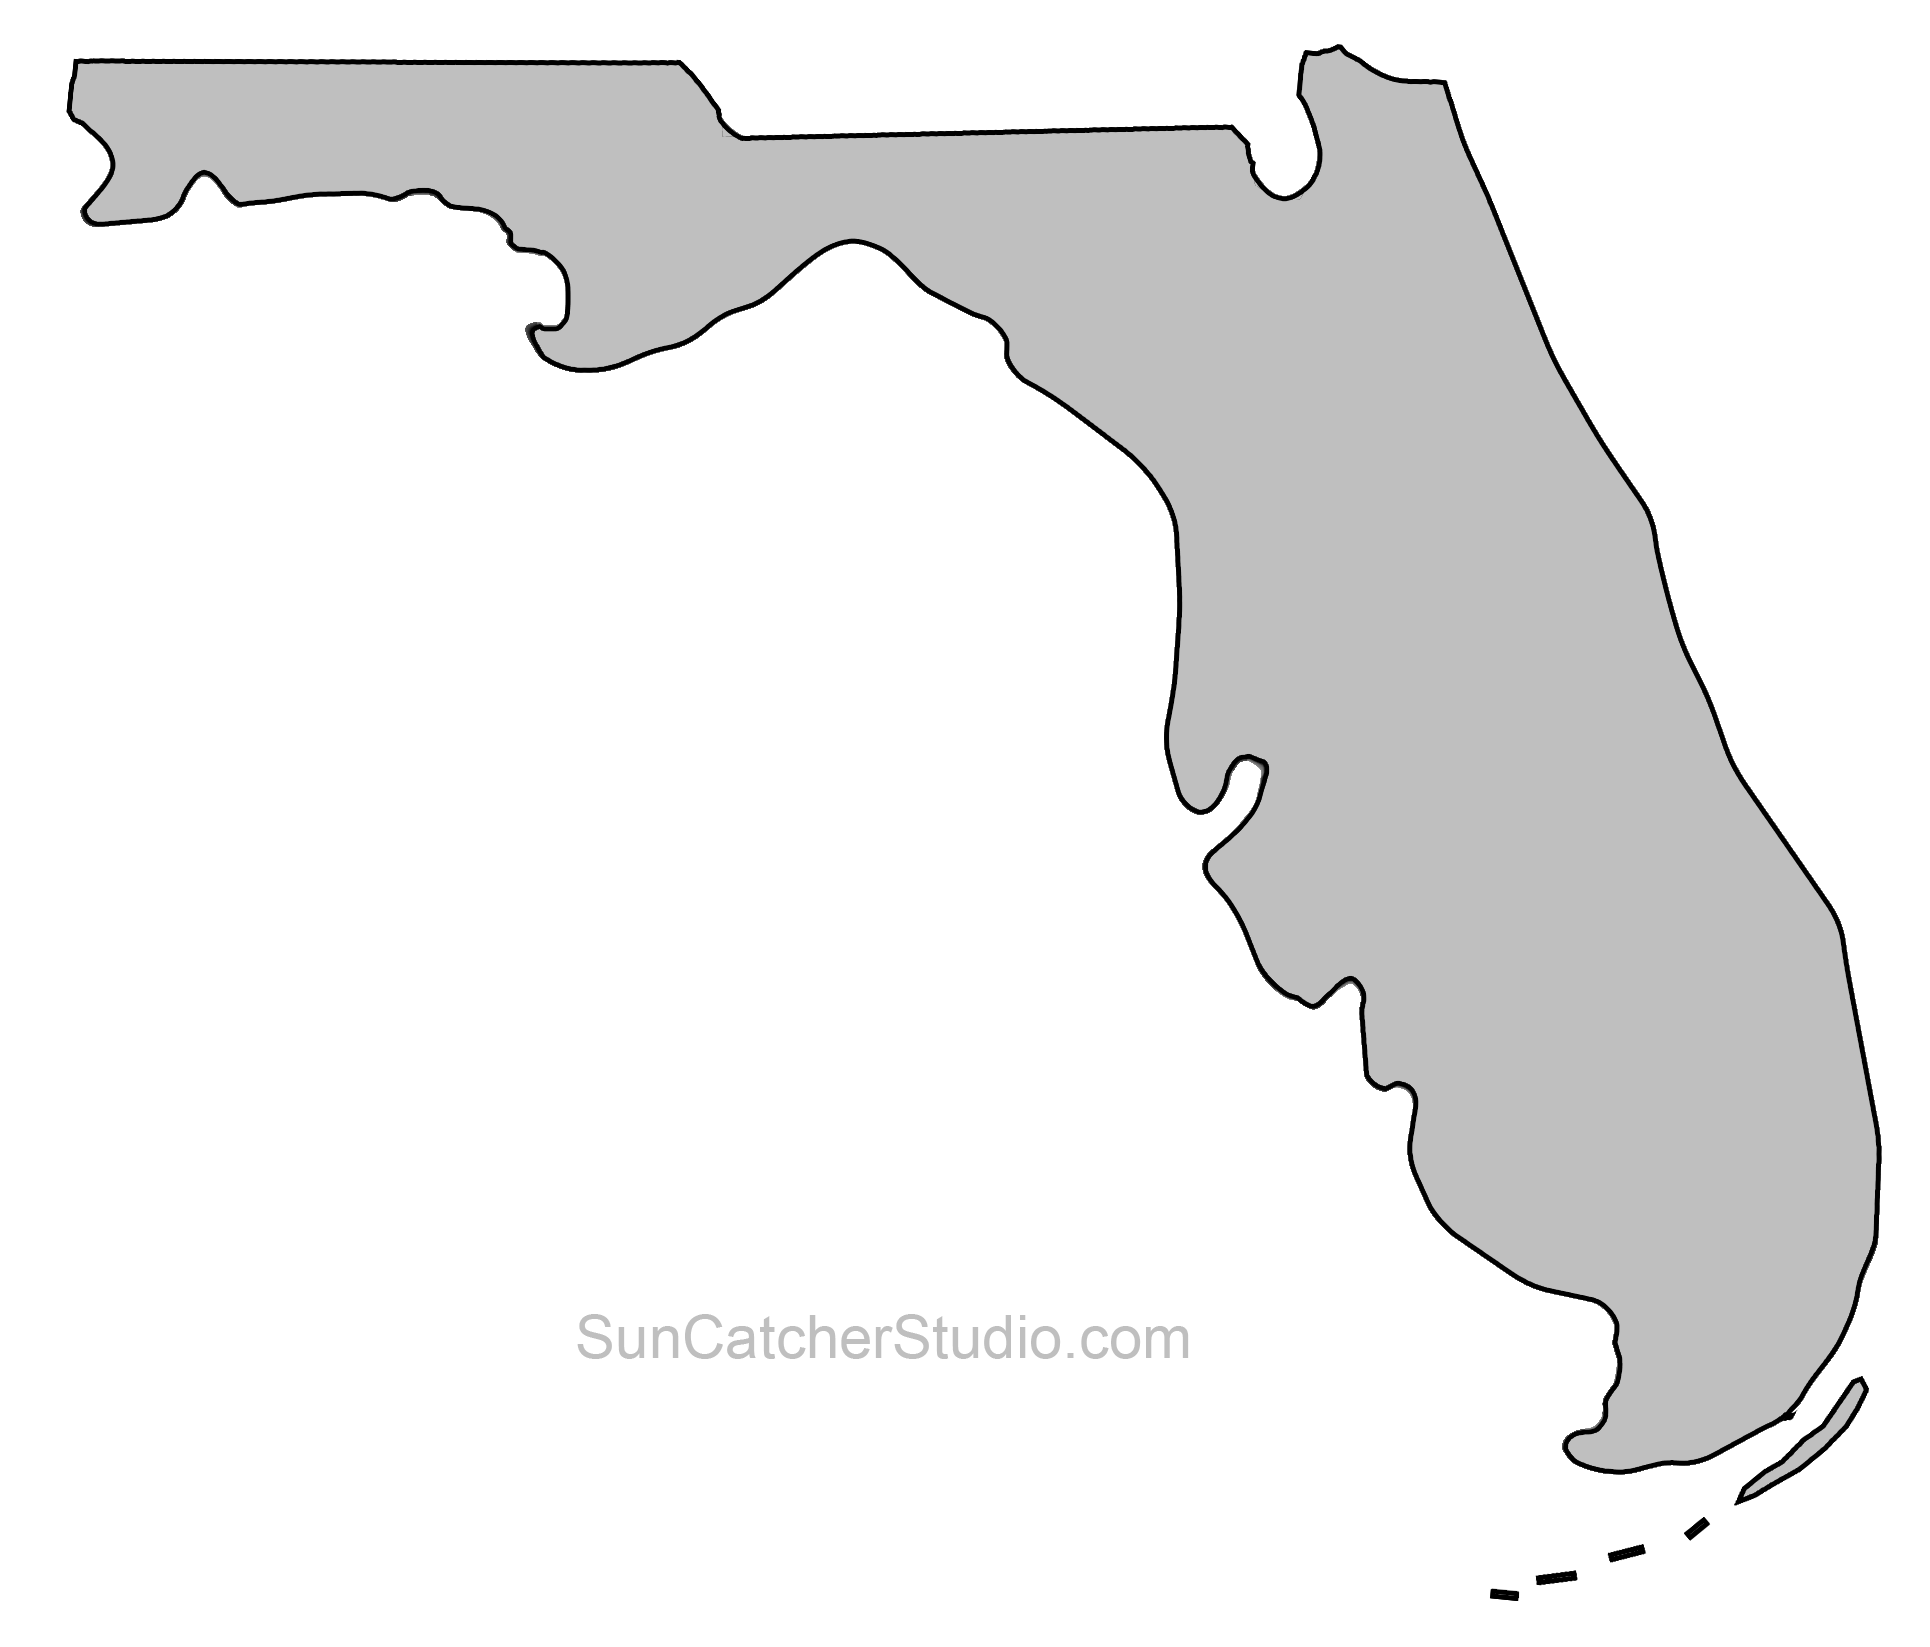 State Outlines Maps Stencils Patterns Clip Art All 50 States Map Of Florida Florida Outline Map Outline